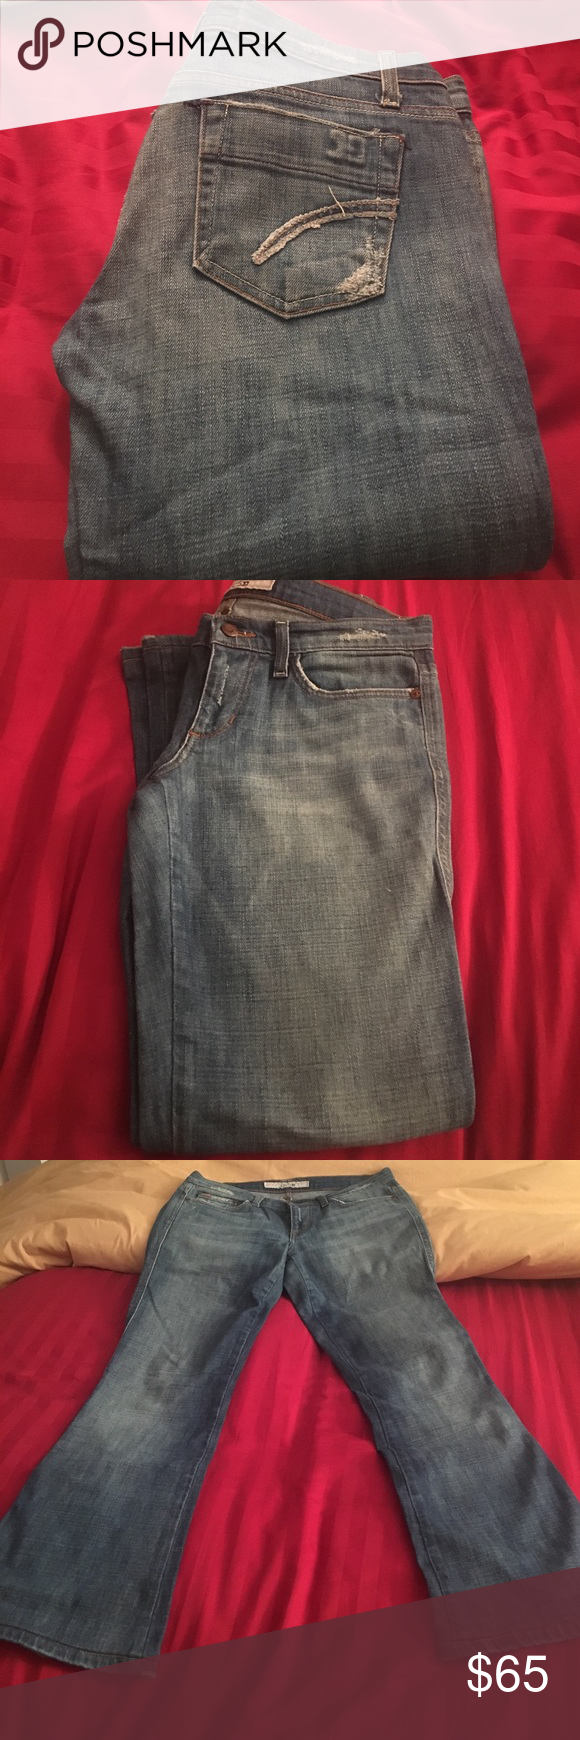 Joe's Jeans Size 28 (equivalent of a US size 4-6). Stetchy, boot cut jeans. Super comfortable. Excellent condition. Only signs of wear is the distressed look around the pockets and waist line which was part of  the manufacturer's design Joe's Jeans Jeans Boot Cut